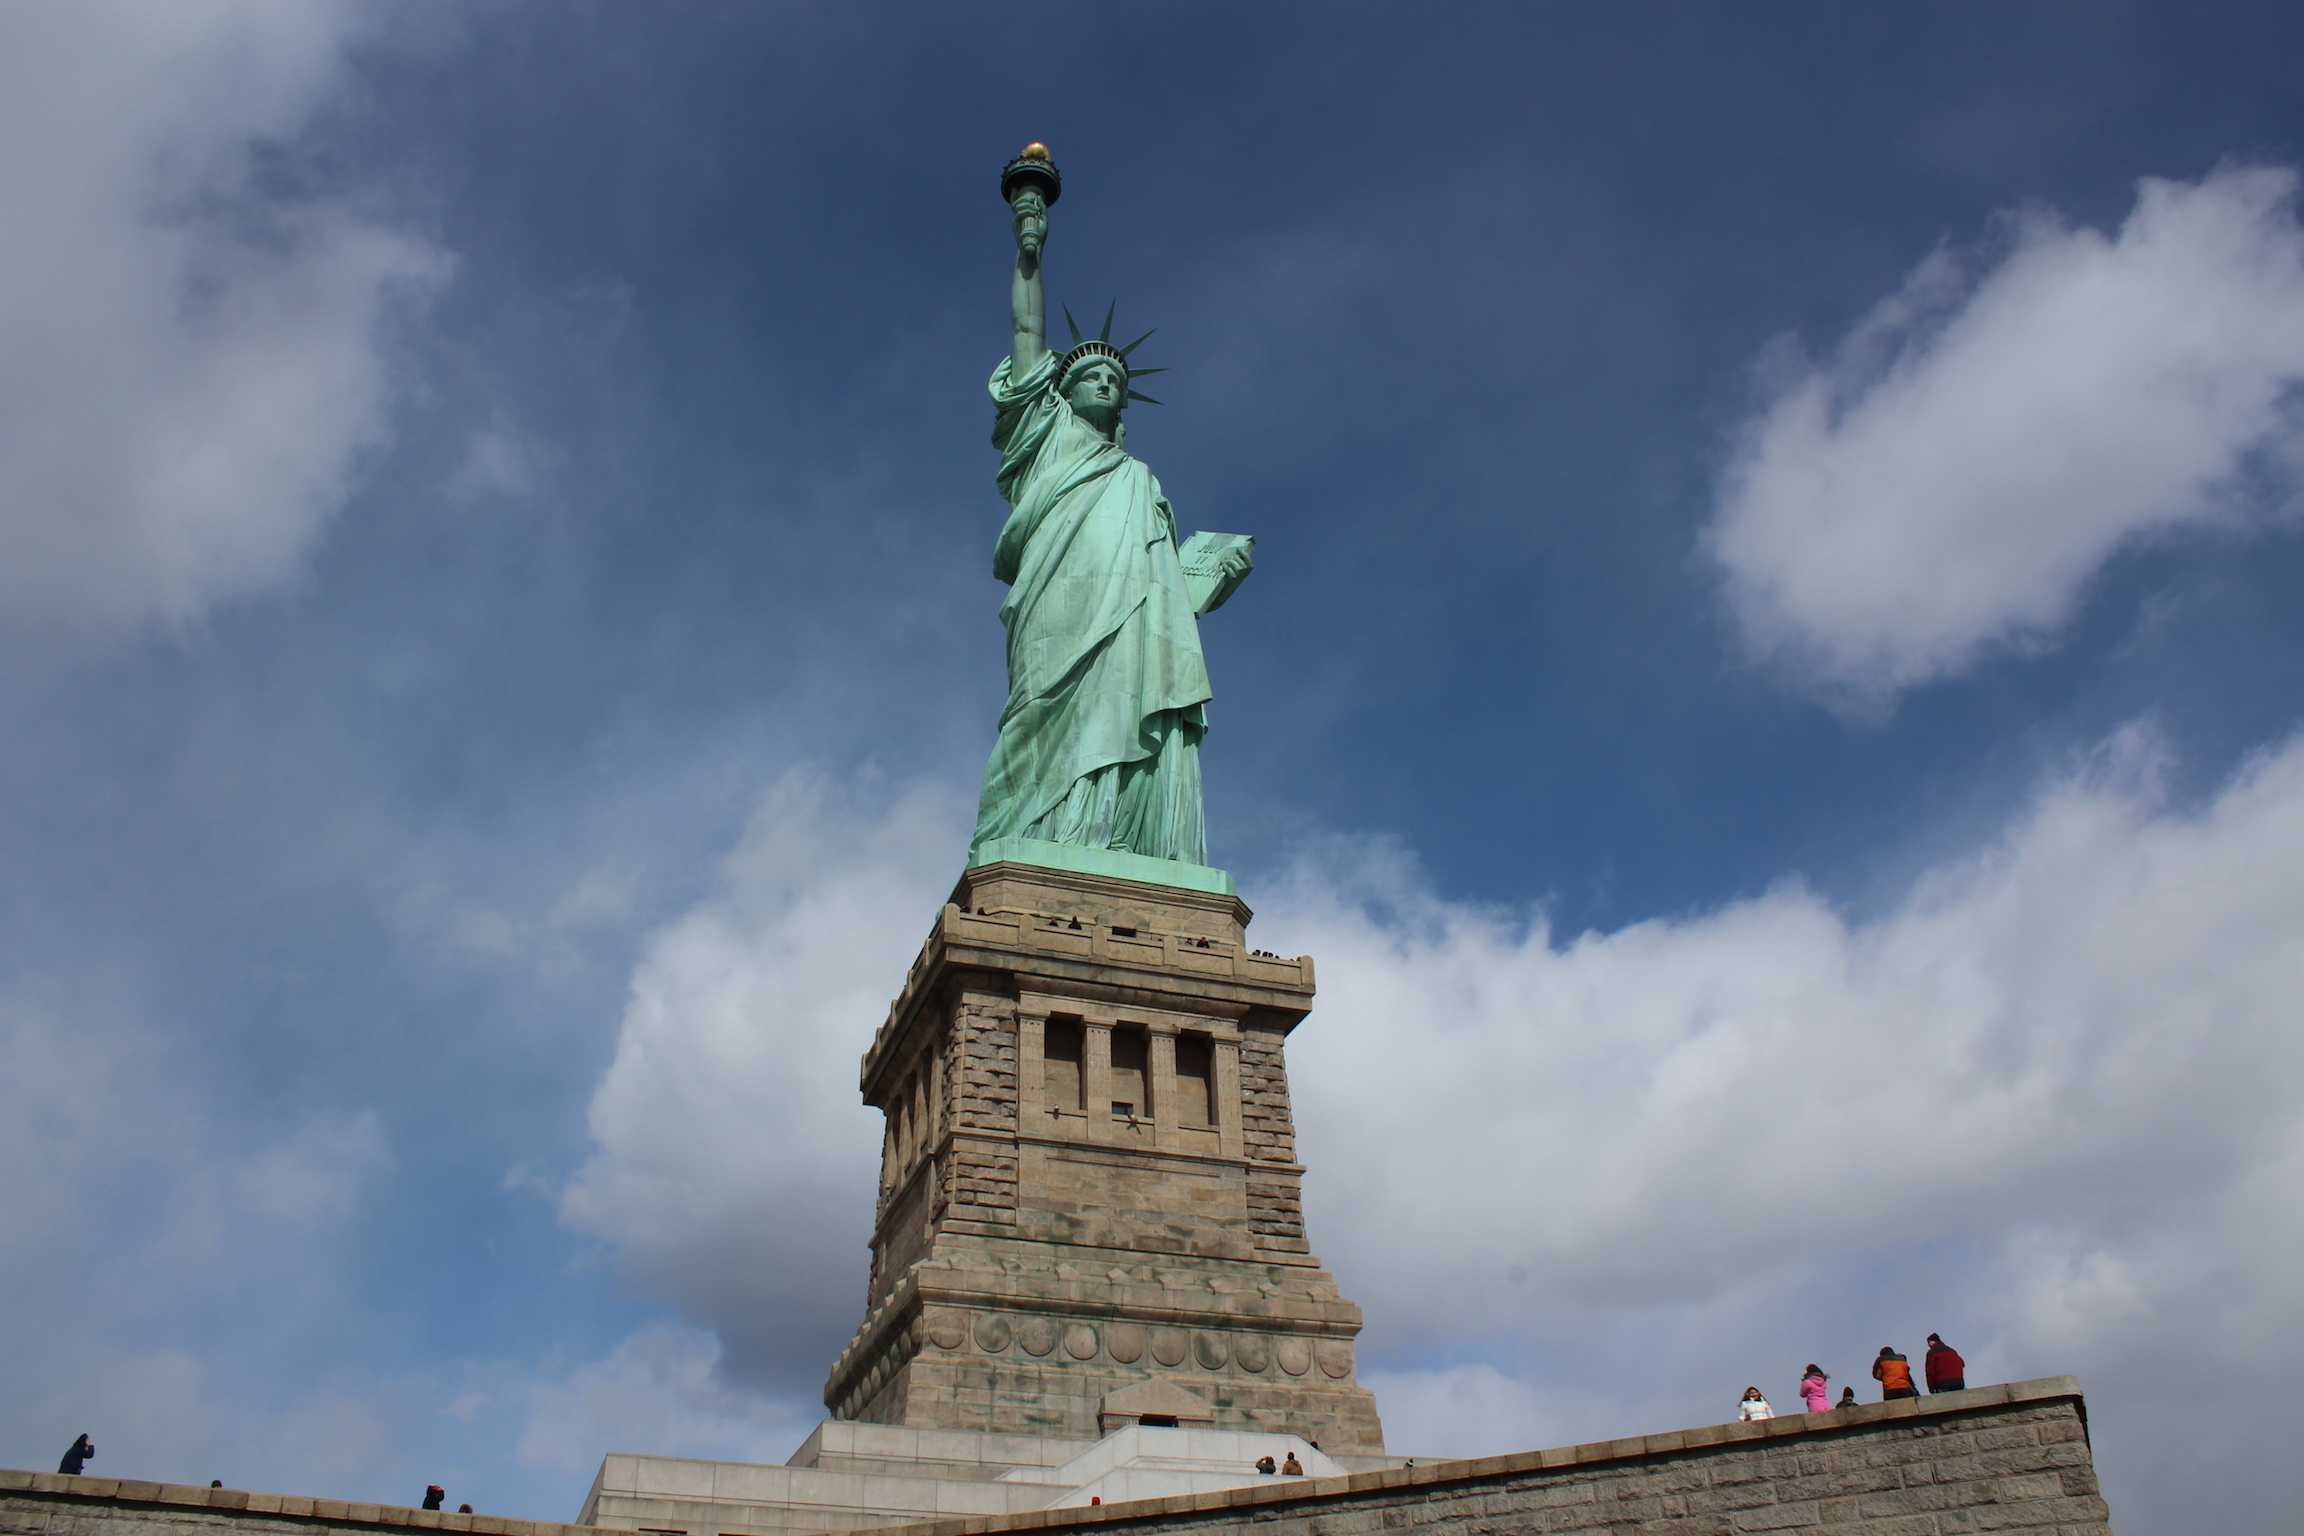 The+Statue+of+Liberty.